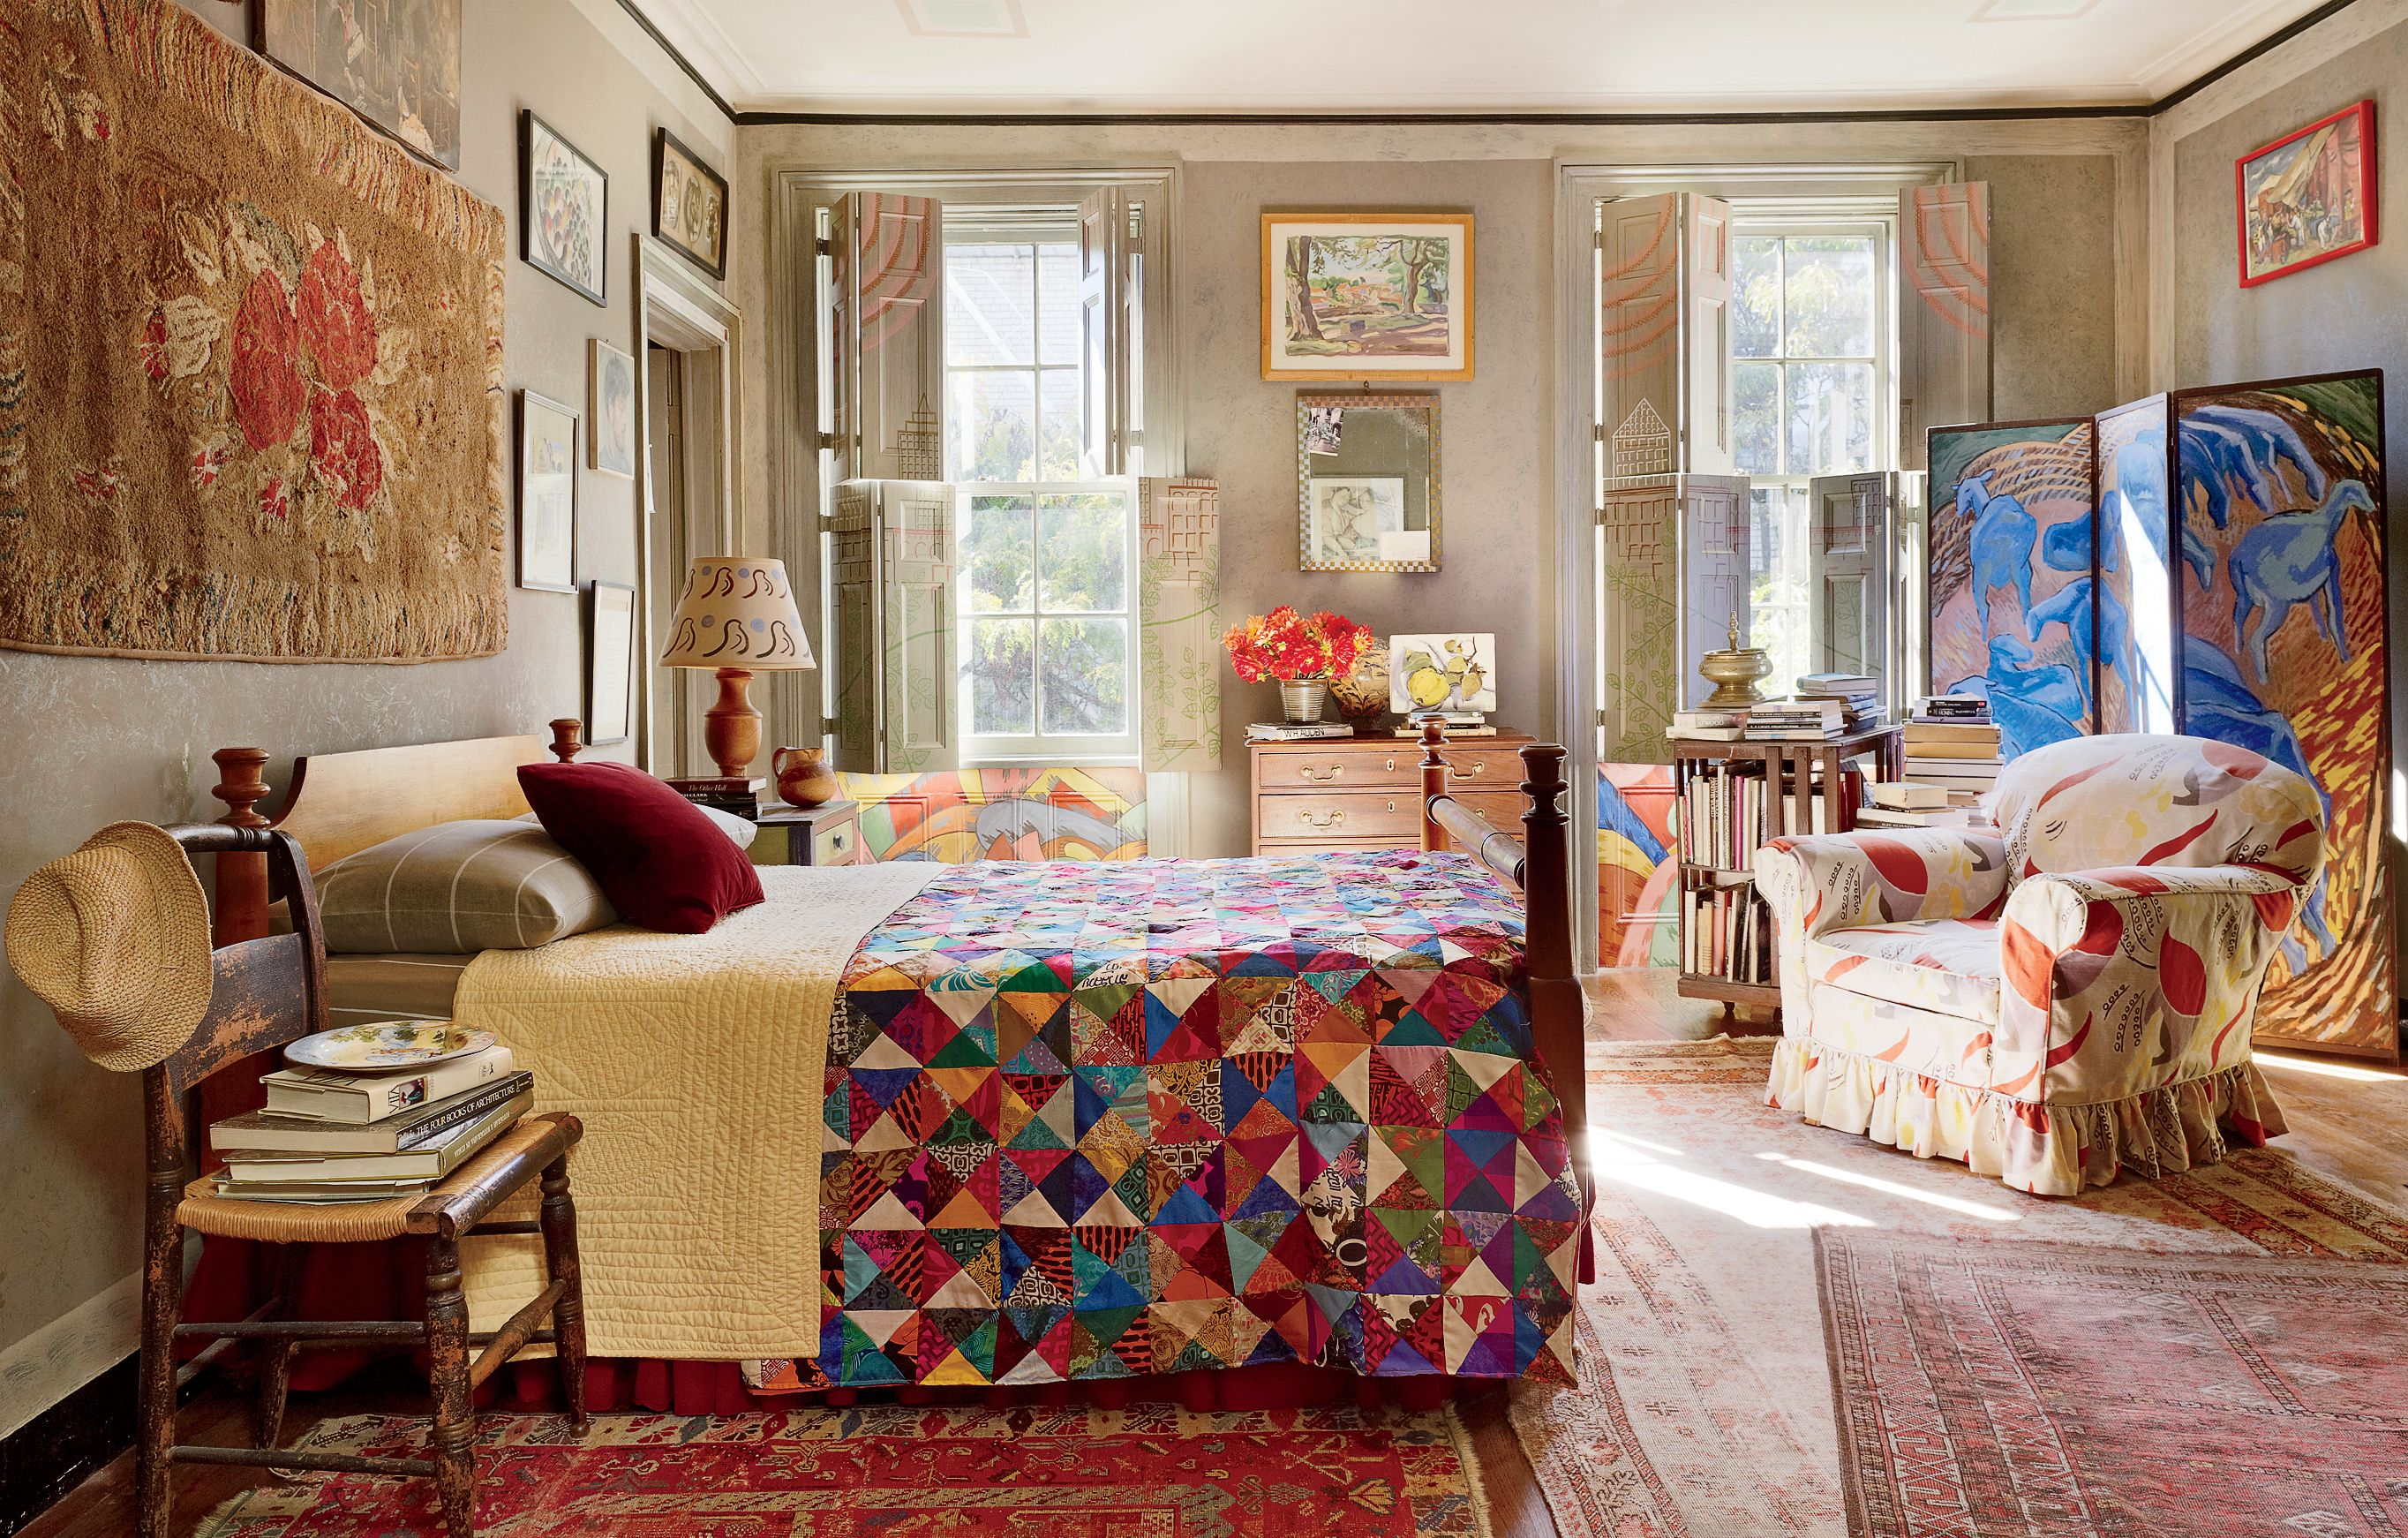 Traditional Bedroom by Andrea Anson via archdigest